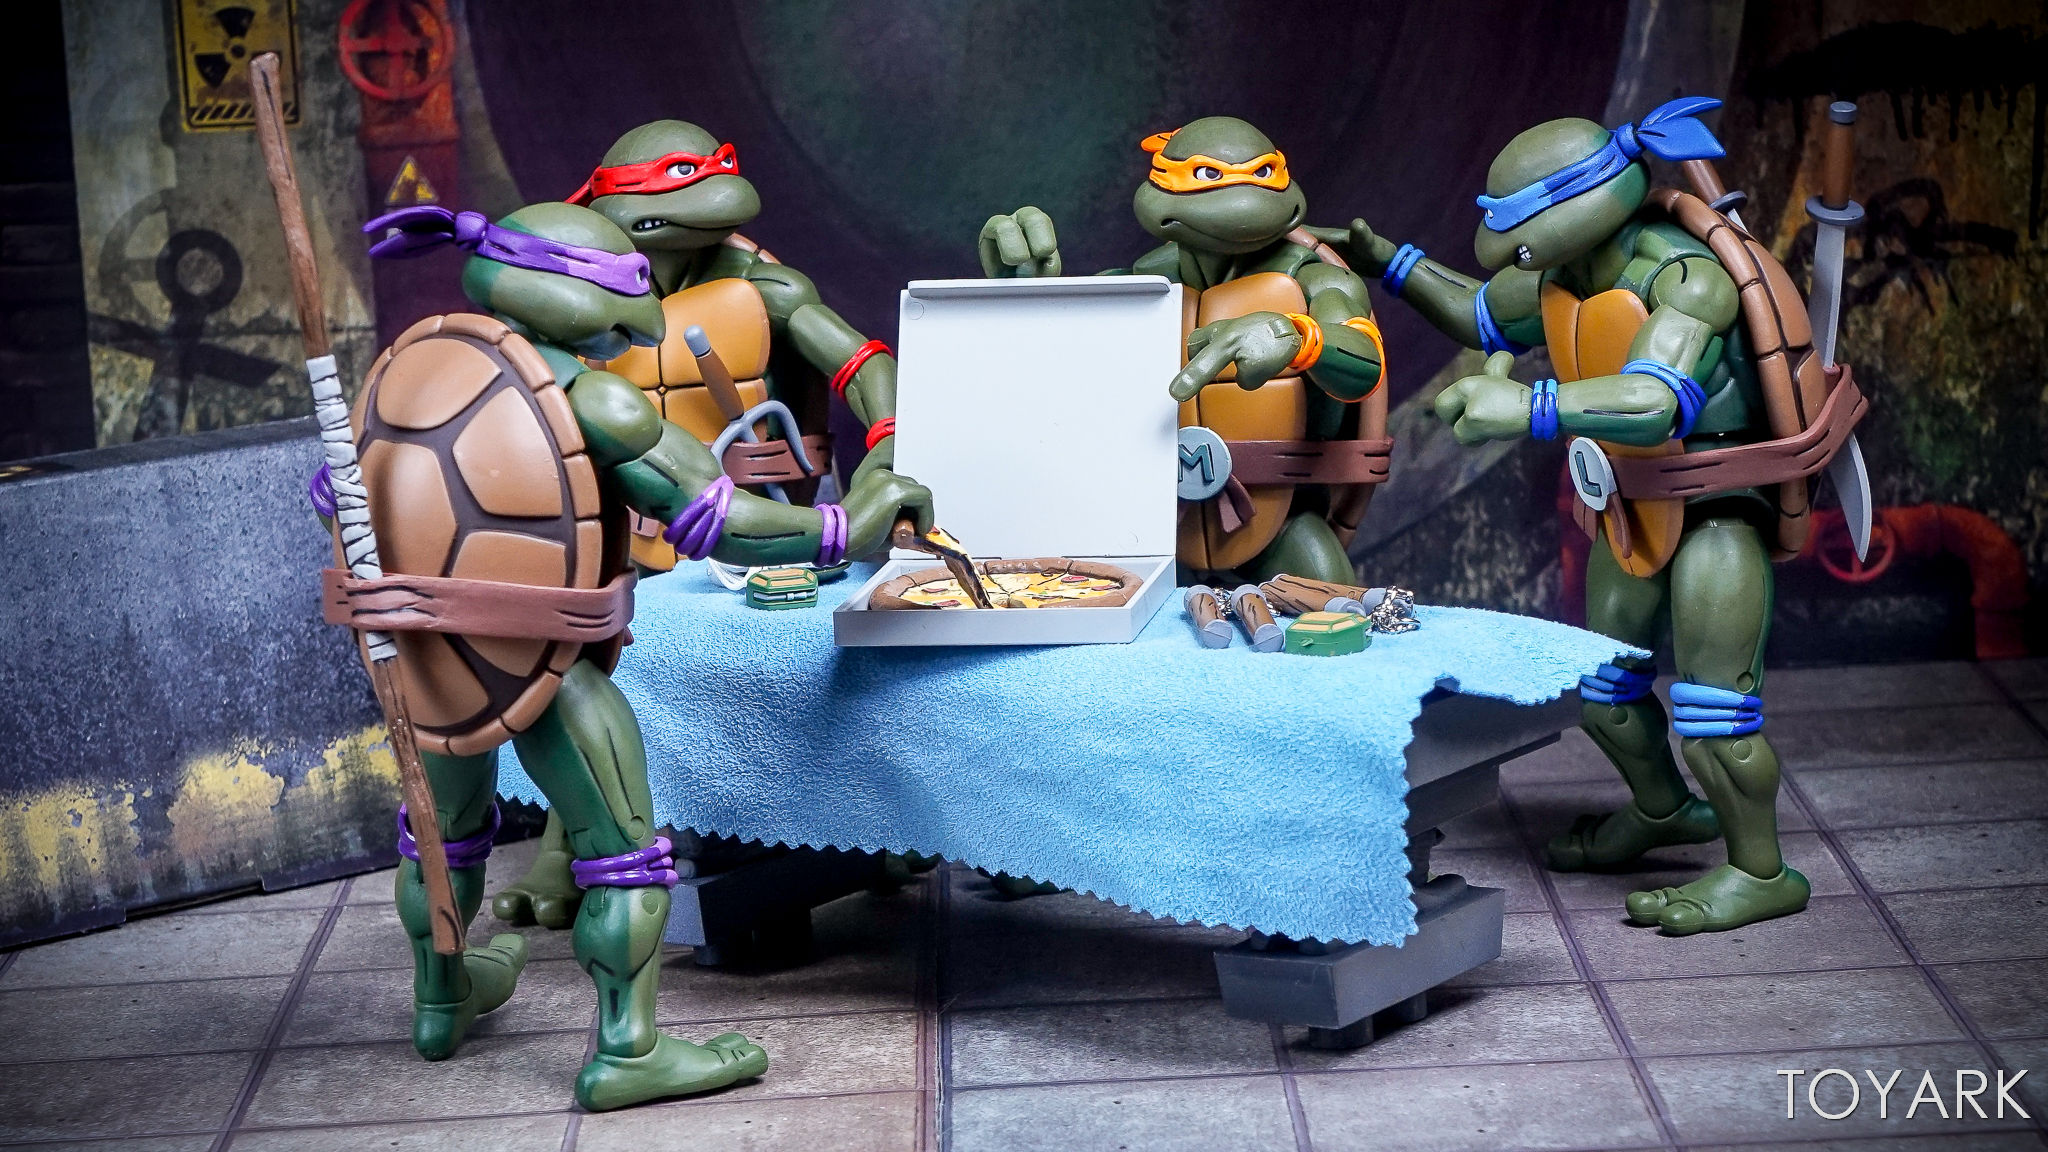 http://news.toyark.com/wp-content/uploads/sites/4/2017/07/NECA-SDCC-2017-Toon-TMNT-037.jpg